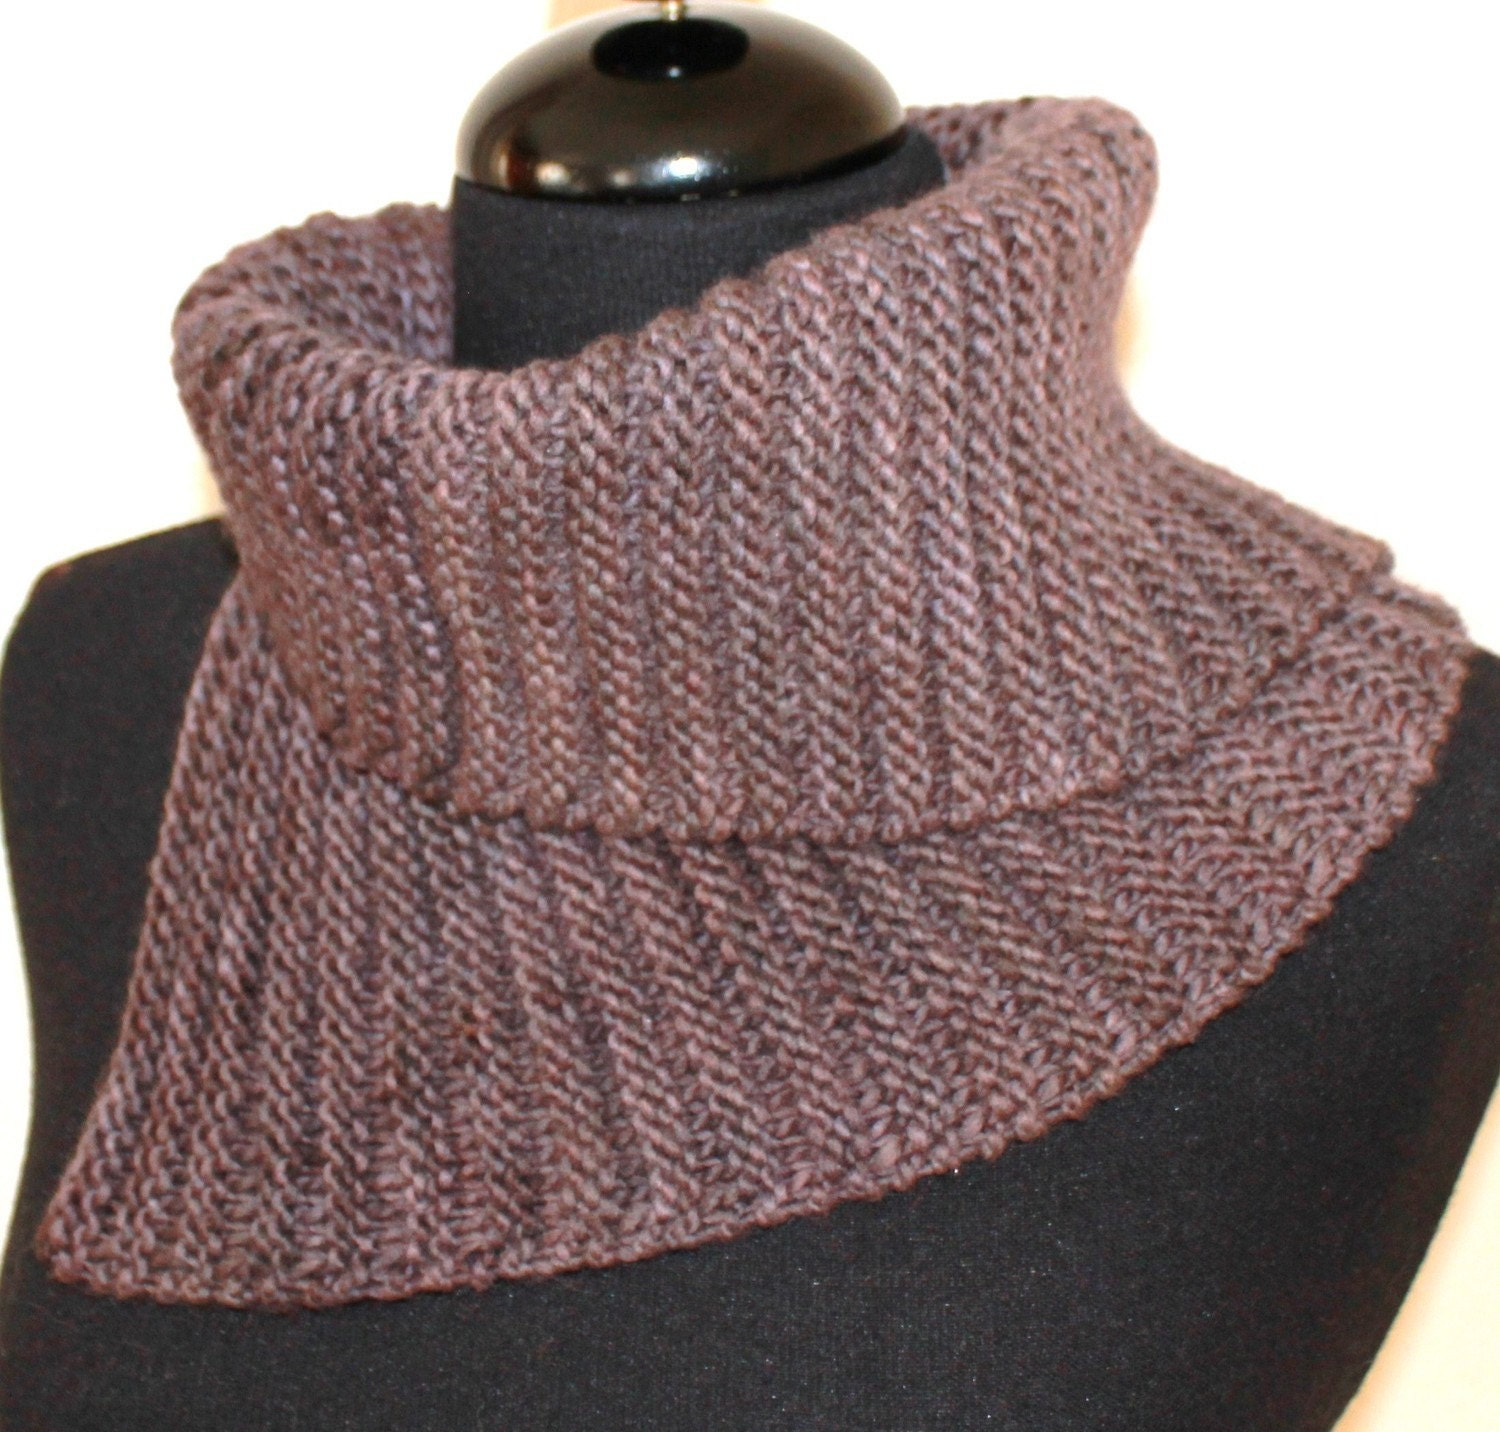 Knitting Easy Pattern Scarf Neck Warmer : PATTERN Cowl Neckwarmer Easy Knitting Pattern ABSOLUTE COWL